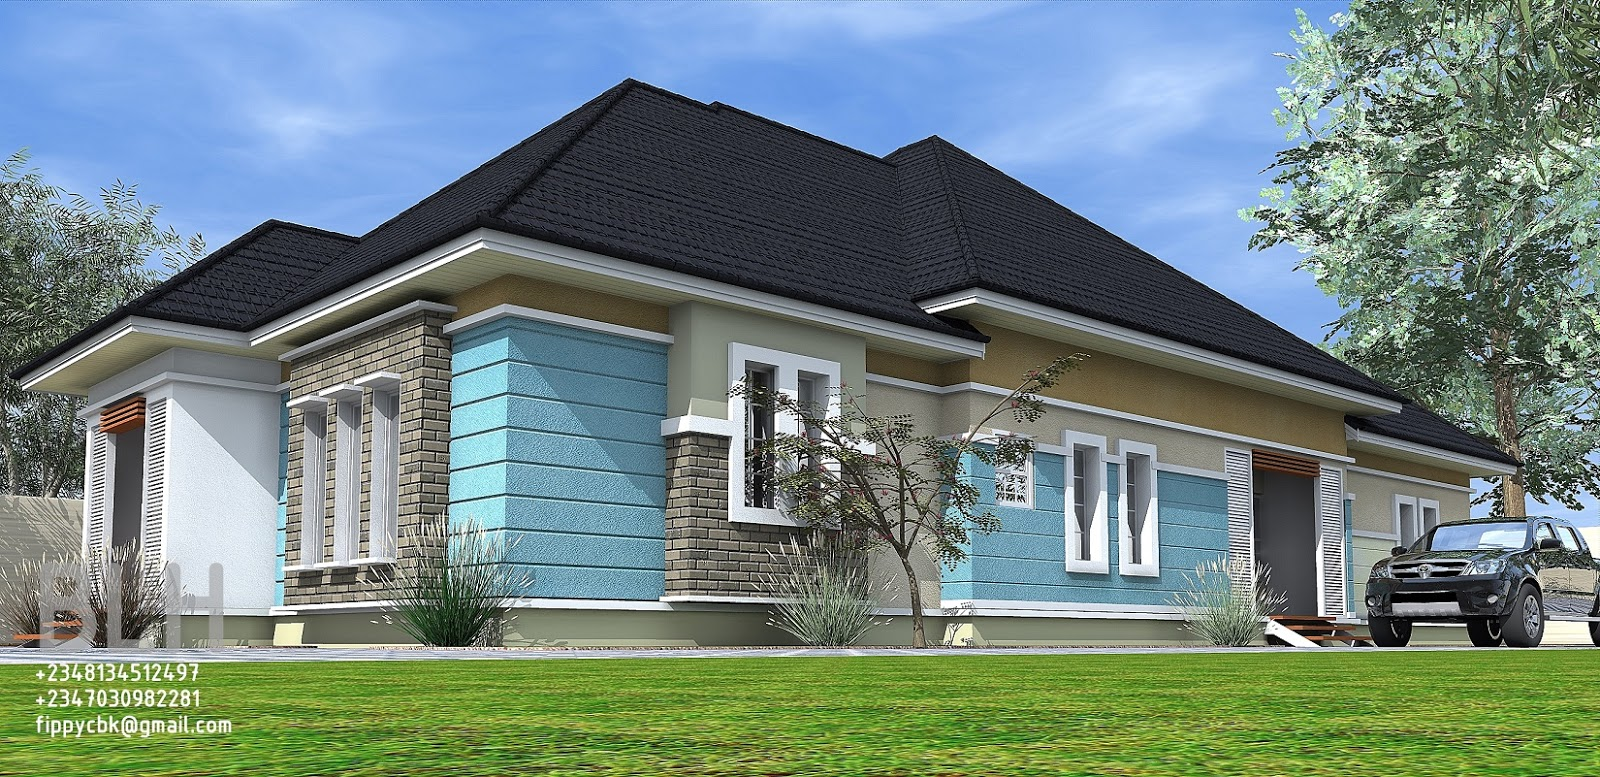 architectural designs by blacklakehouse 4 bedroom bungalow